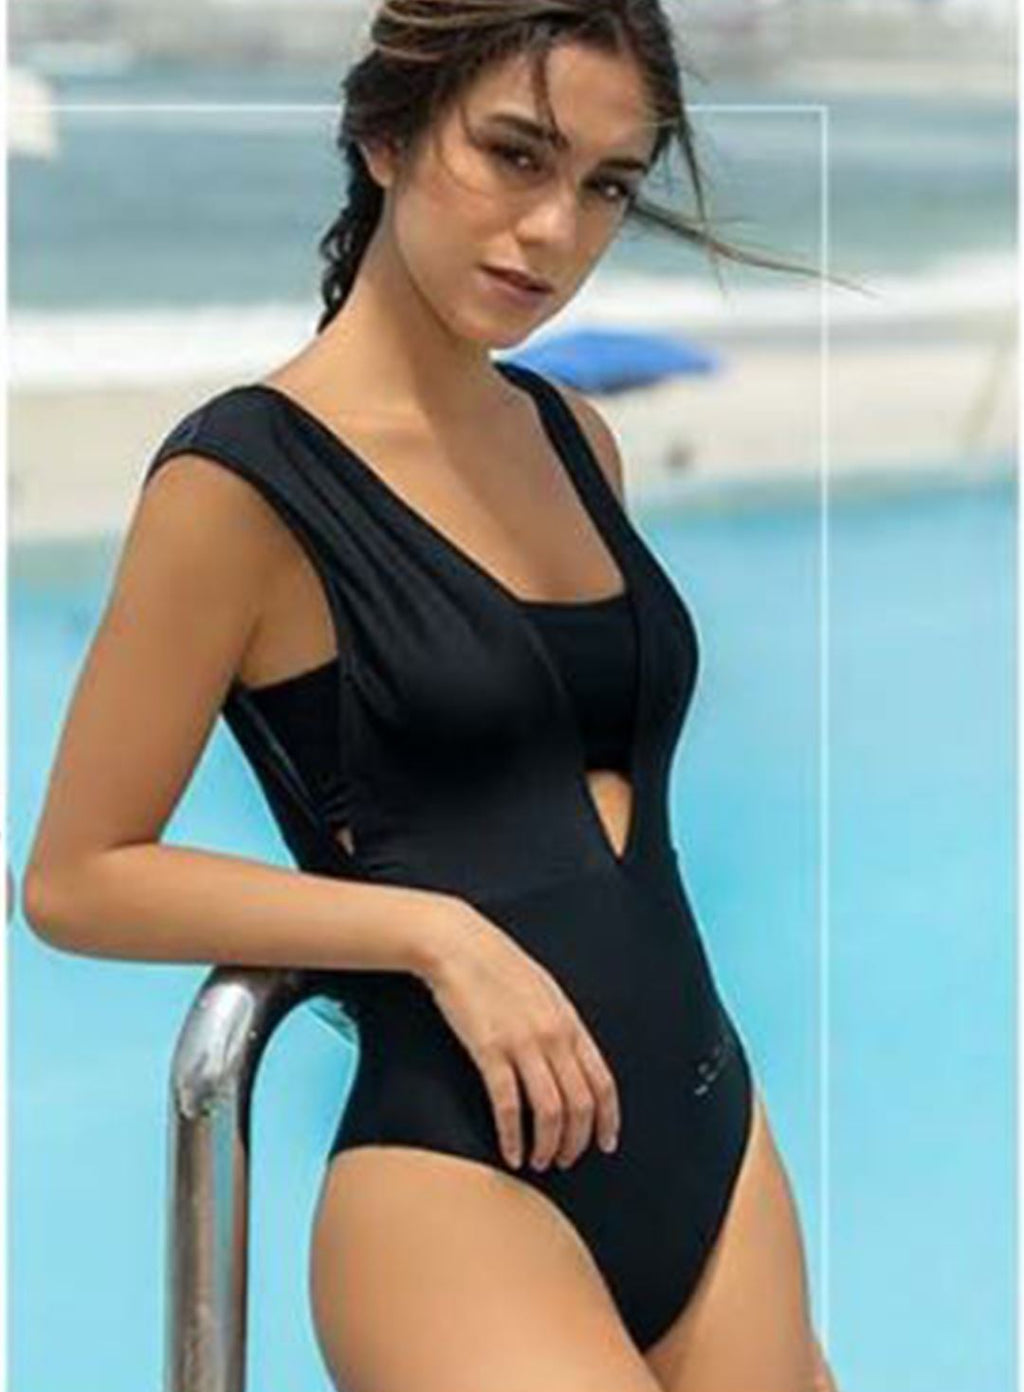 ONE PIECE SHOWY - CROMO/NEGRO SUPER SALE 30%OFF WIN